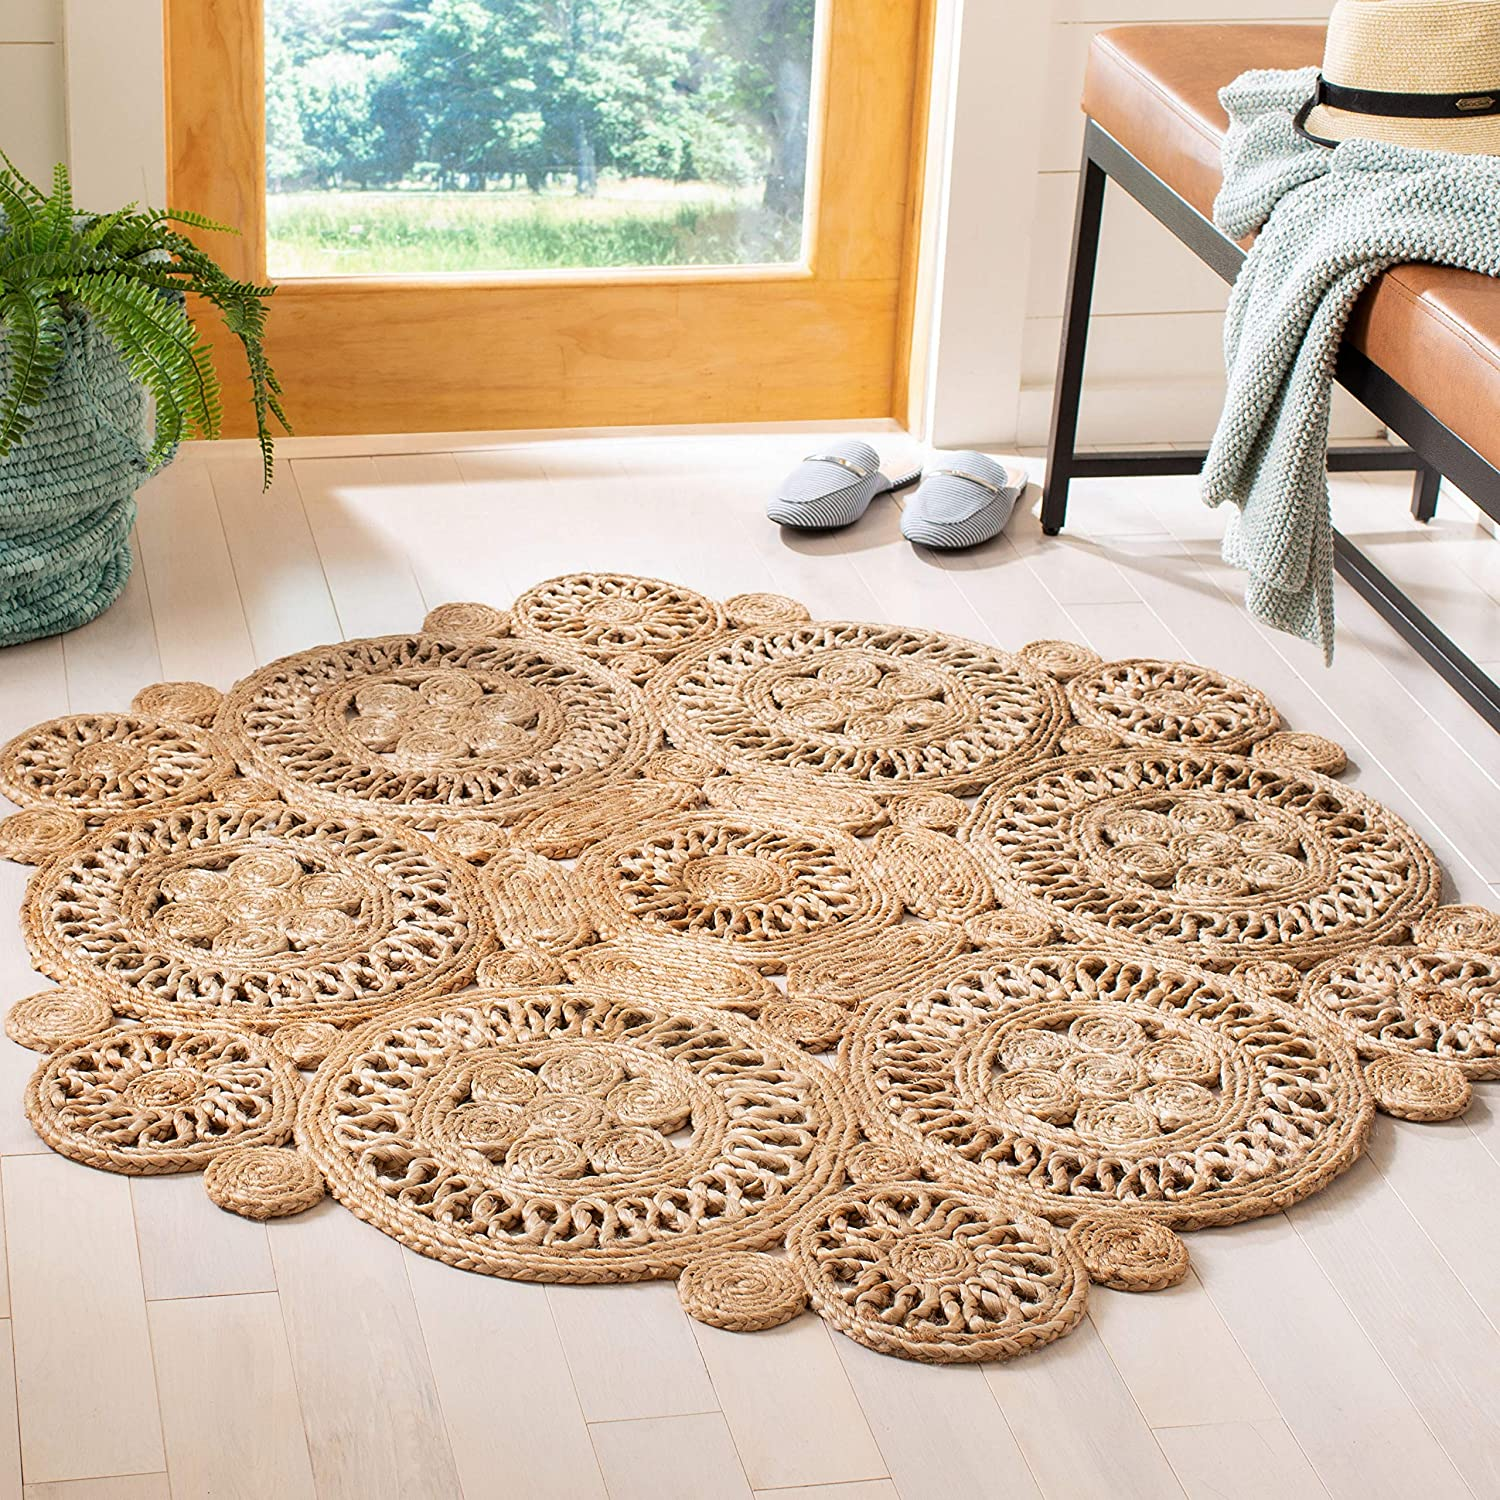 Safavieh Natural famous store Fiber Round Collection Boho NFB238A Handmade Co